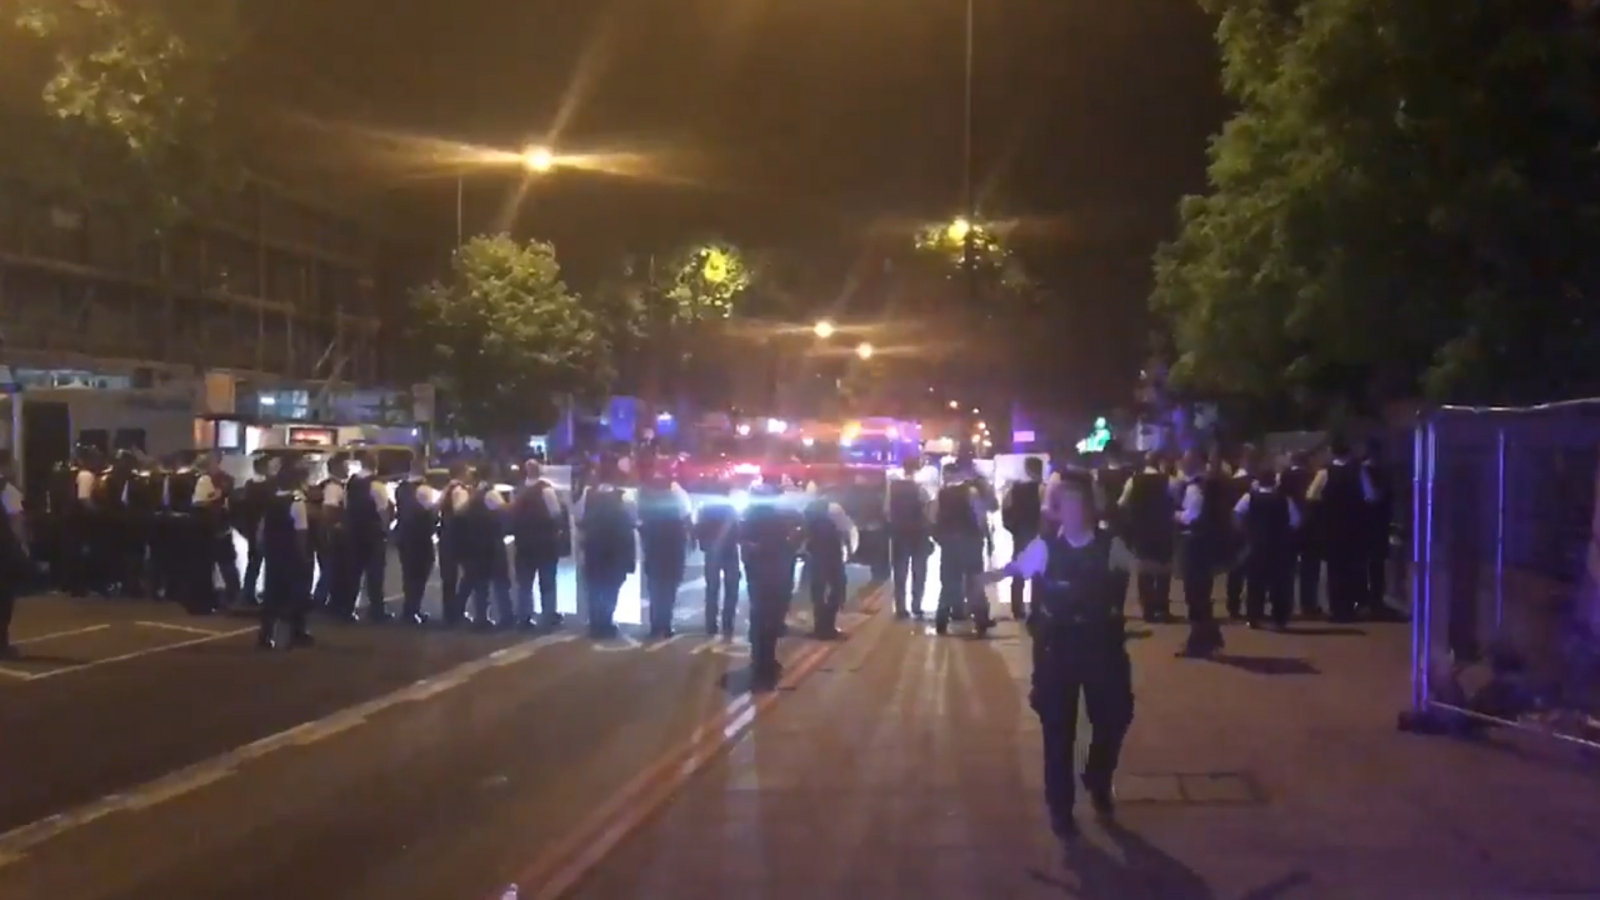 riot-police-clash-with-youths-armed-with-knives-in-london